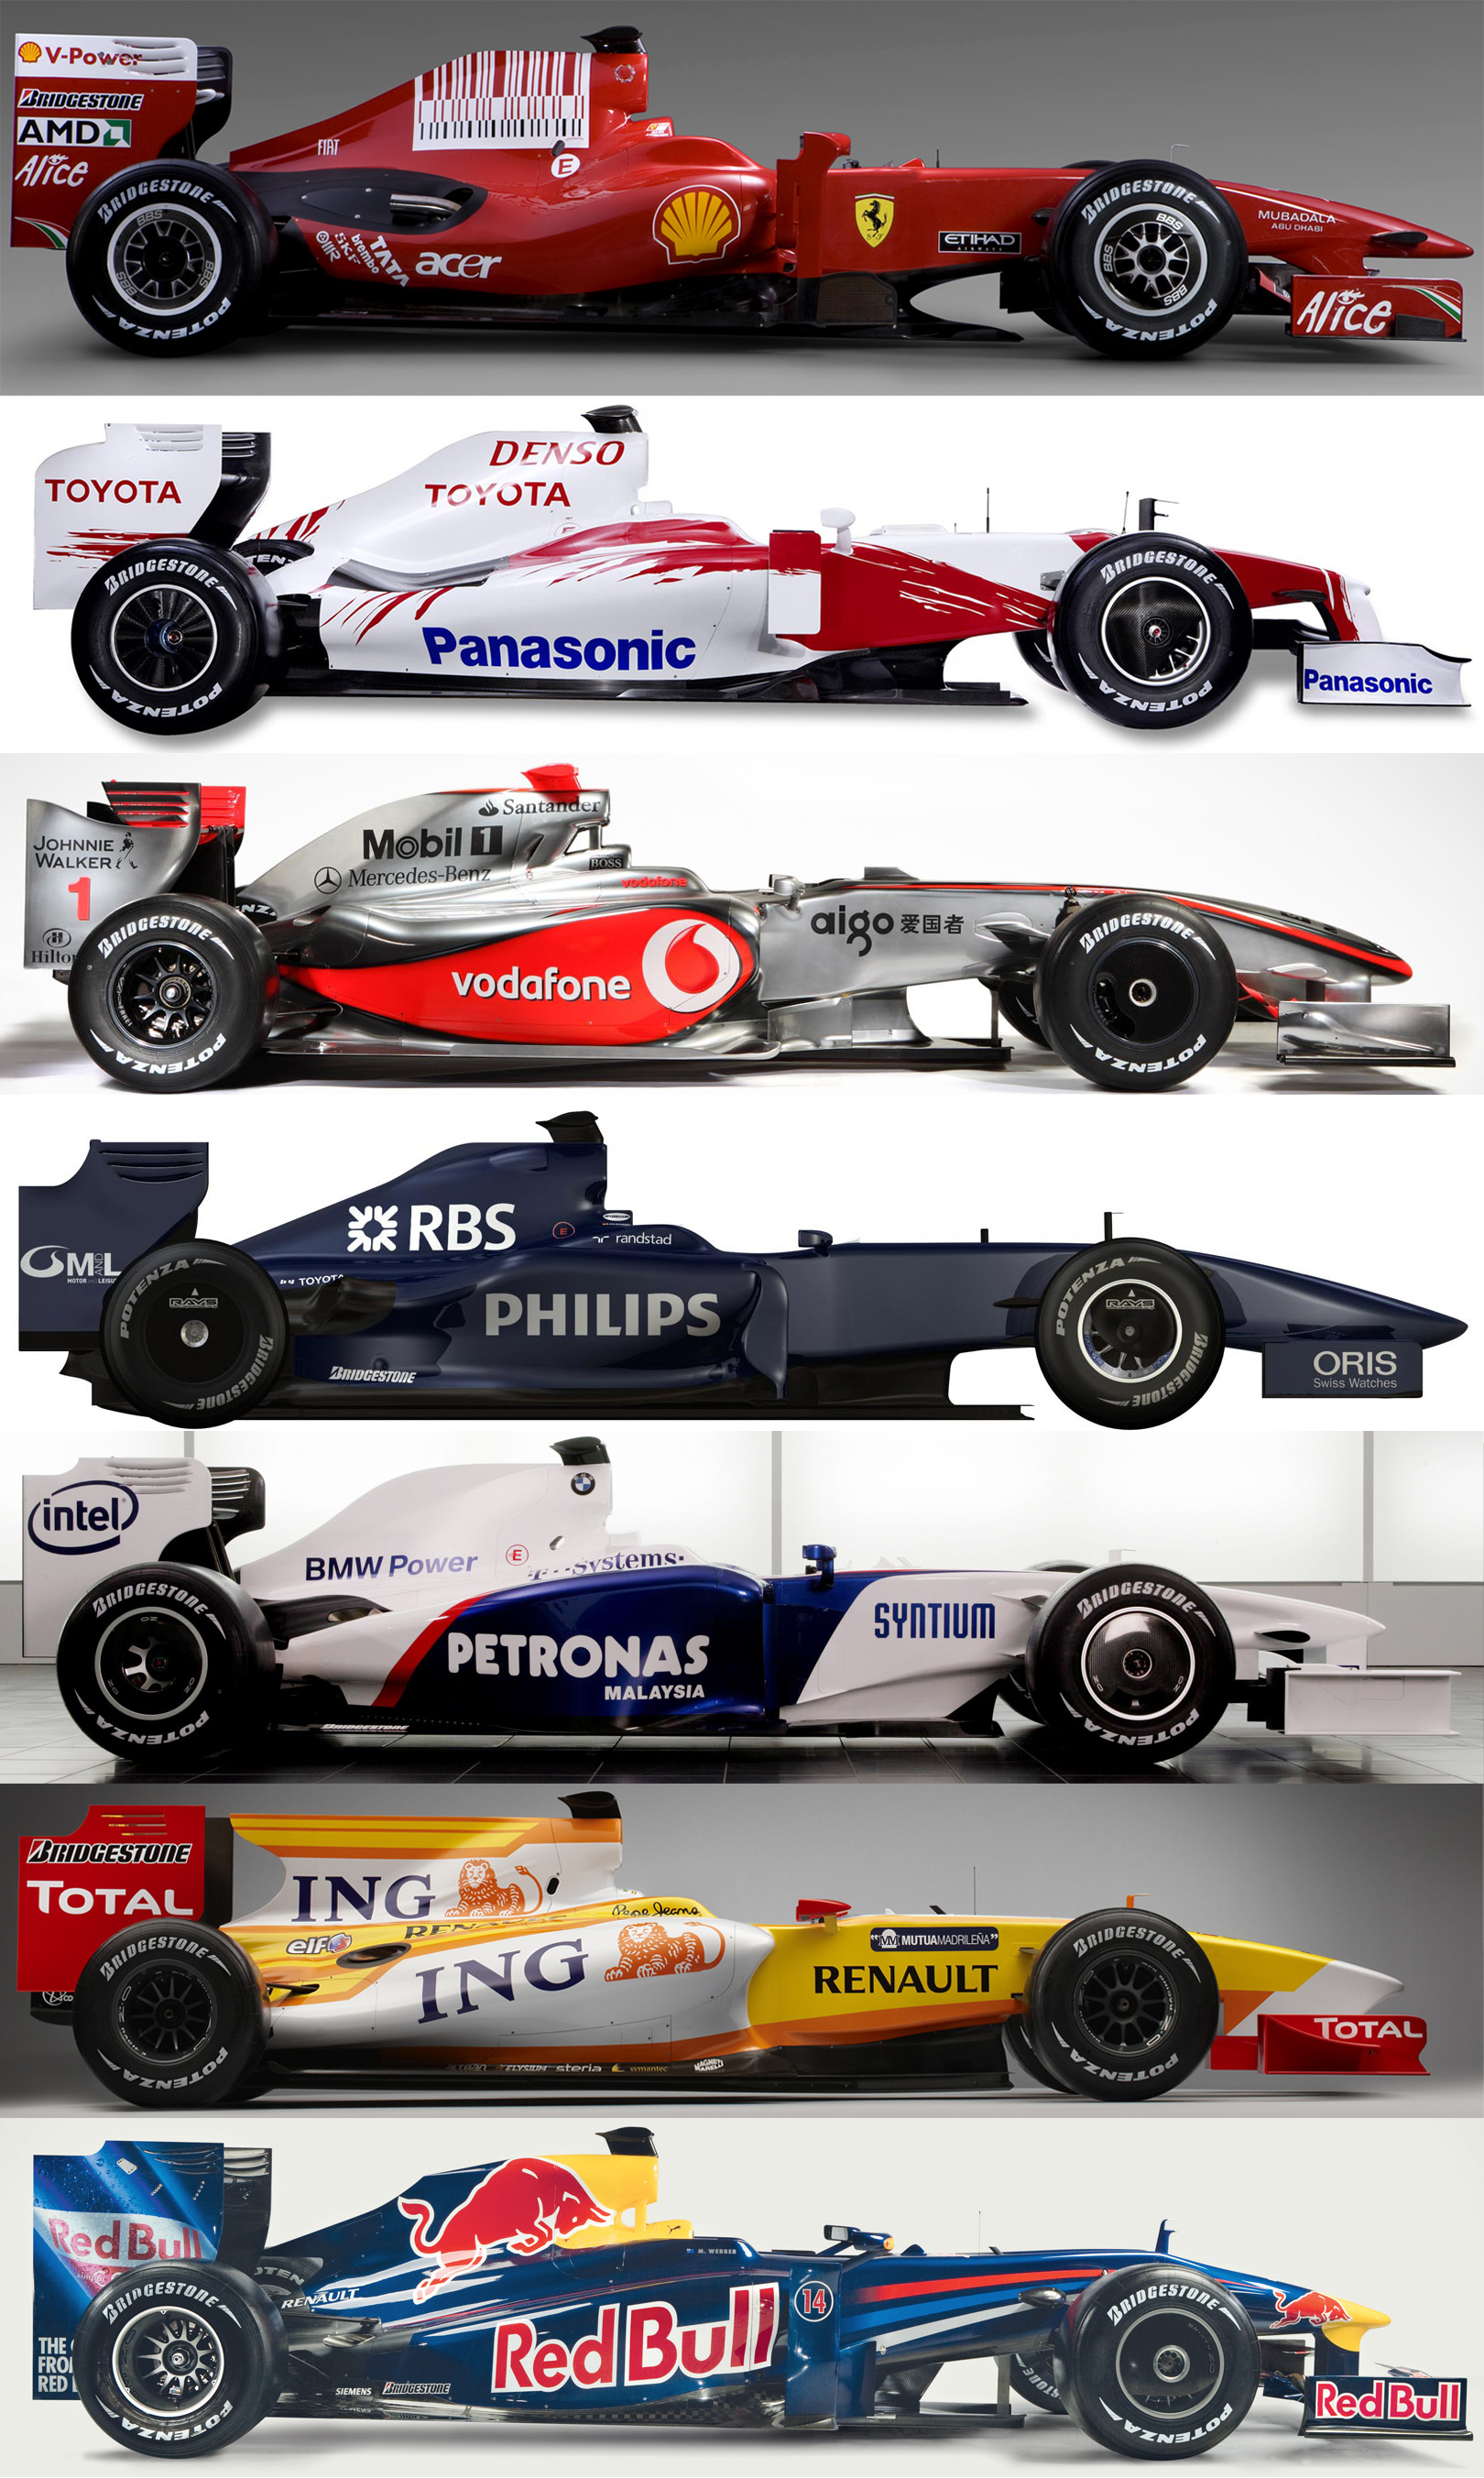 Red Bull Rb5 Specs Photos Videos And More On Topworldauto